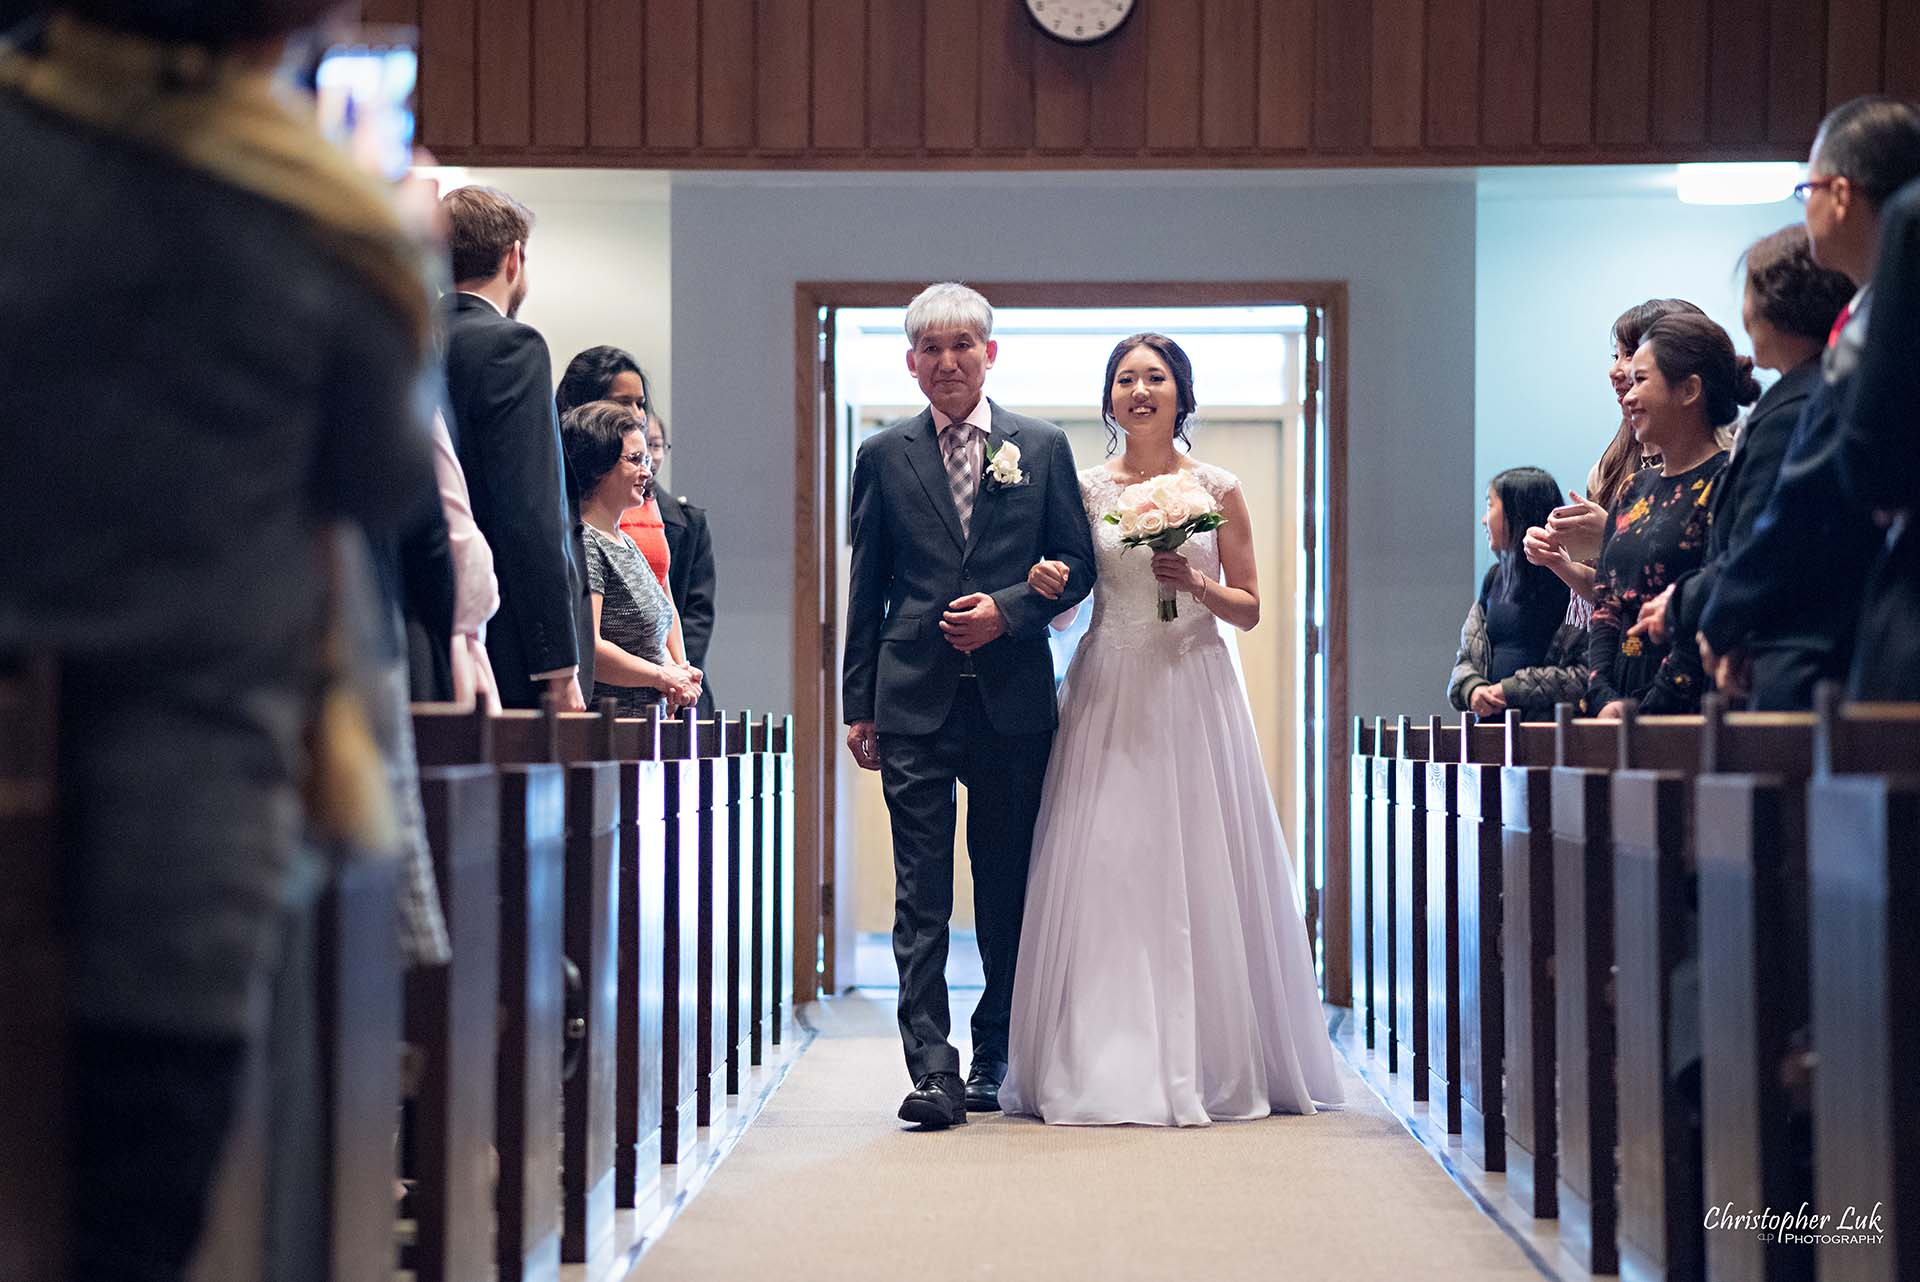 Christopher Luk Toronto Wedding Photographer - Natural Candid Photojournalistic Bride Father Immanuel Baptist Church Ceremony Processional Walking Down the Aisle